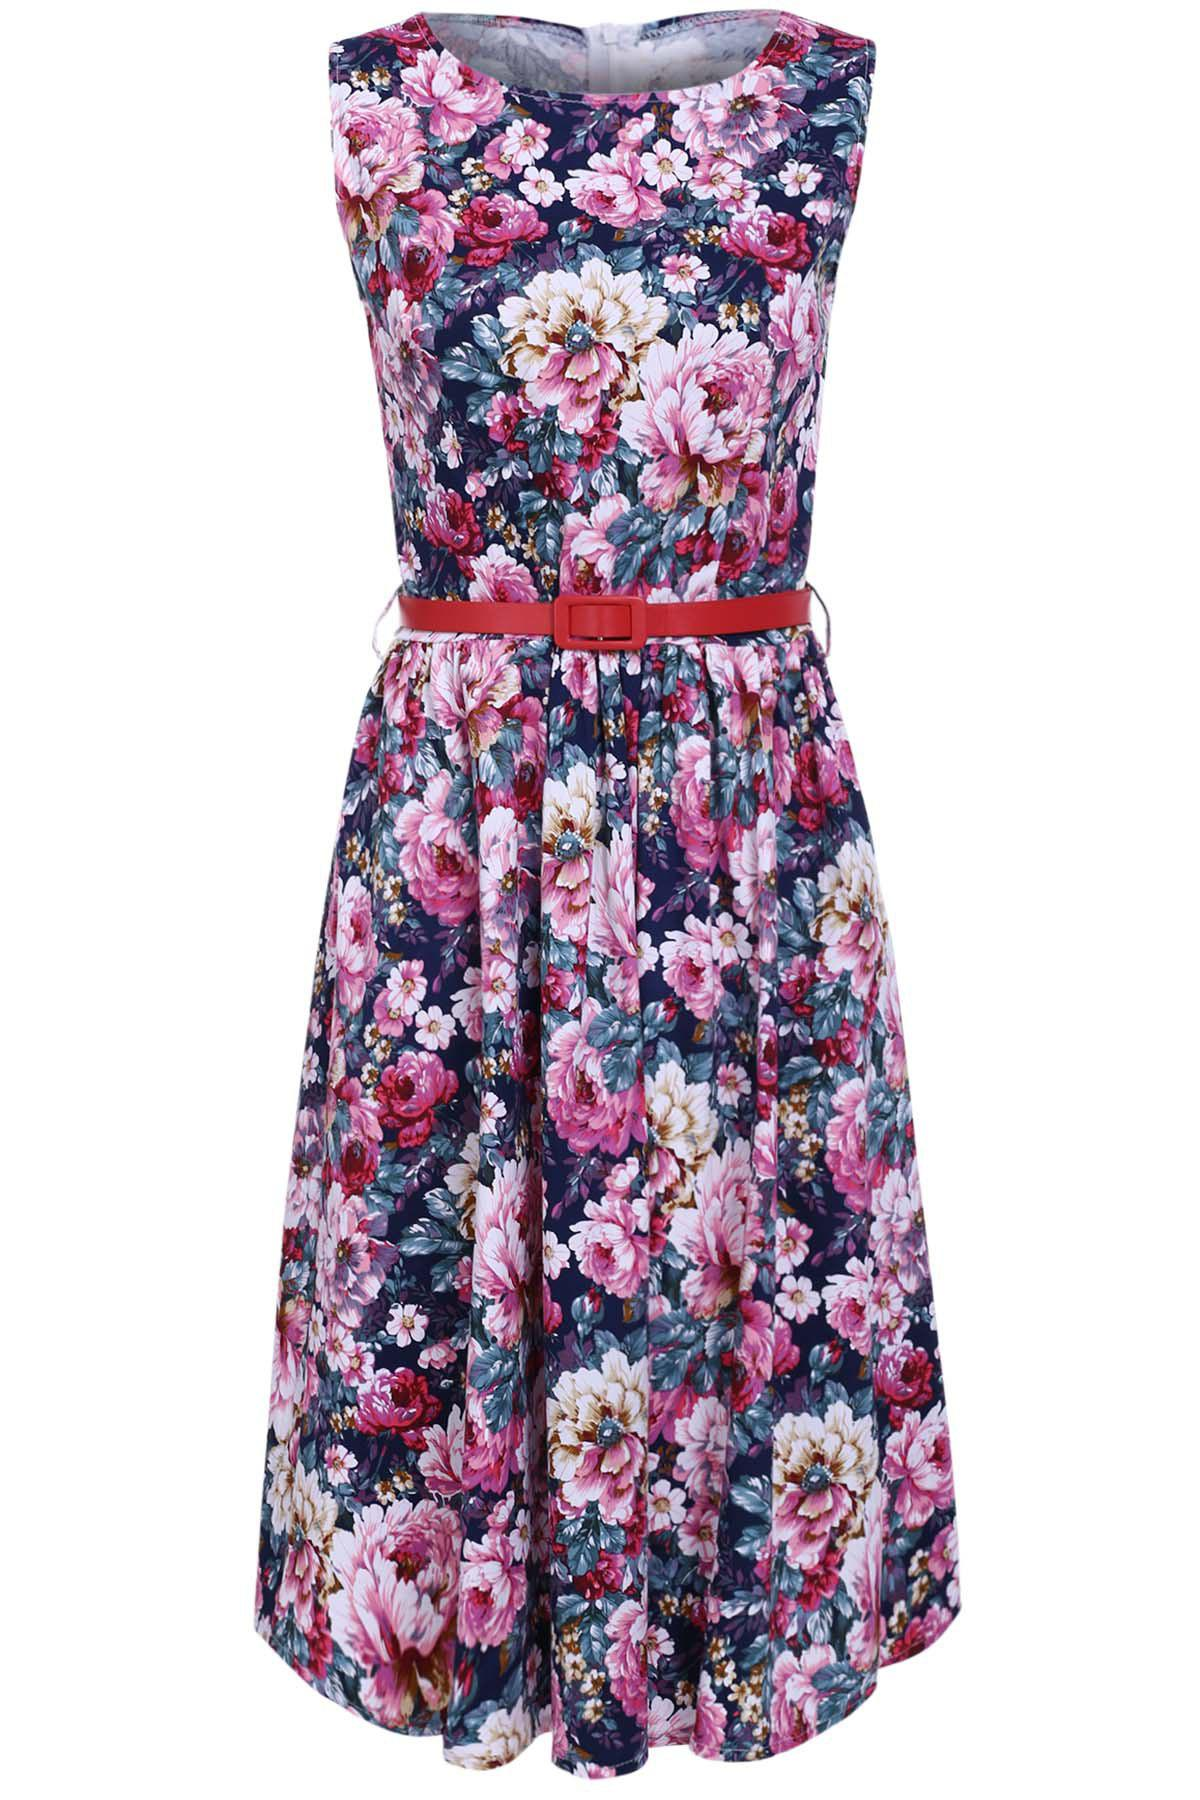 Retro Style Boat Neck Floral Print High Waist Ball Dress For Women - PURPLISH BLUE M